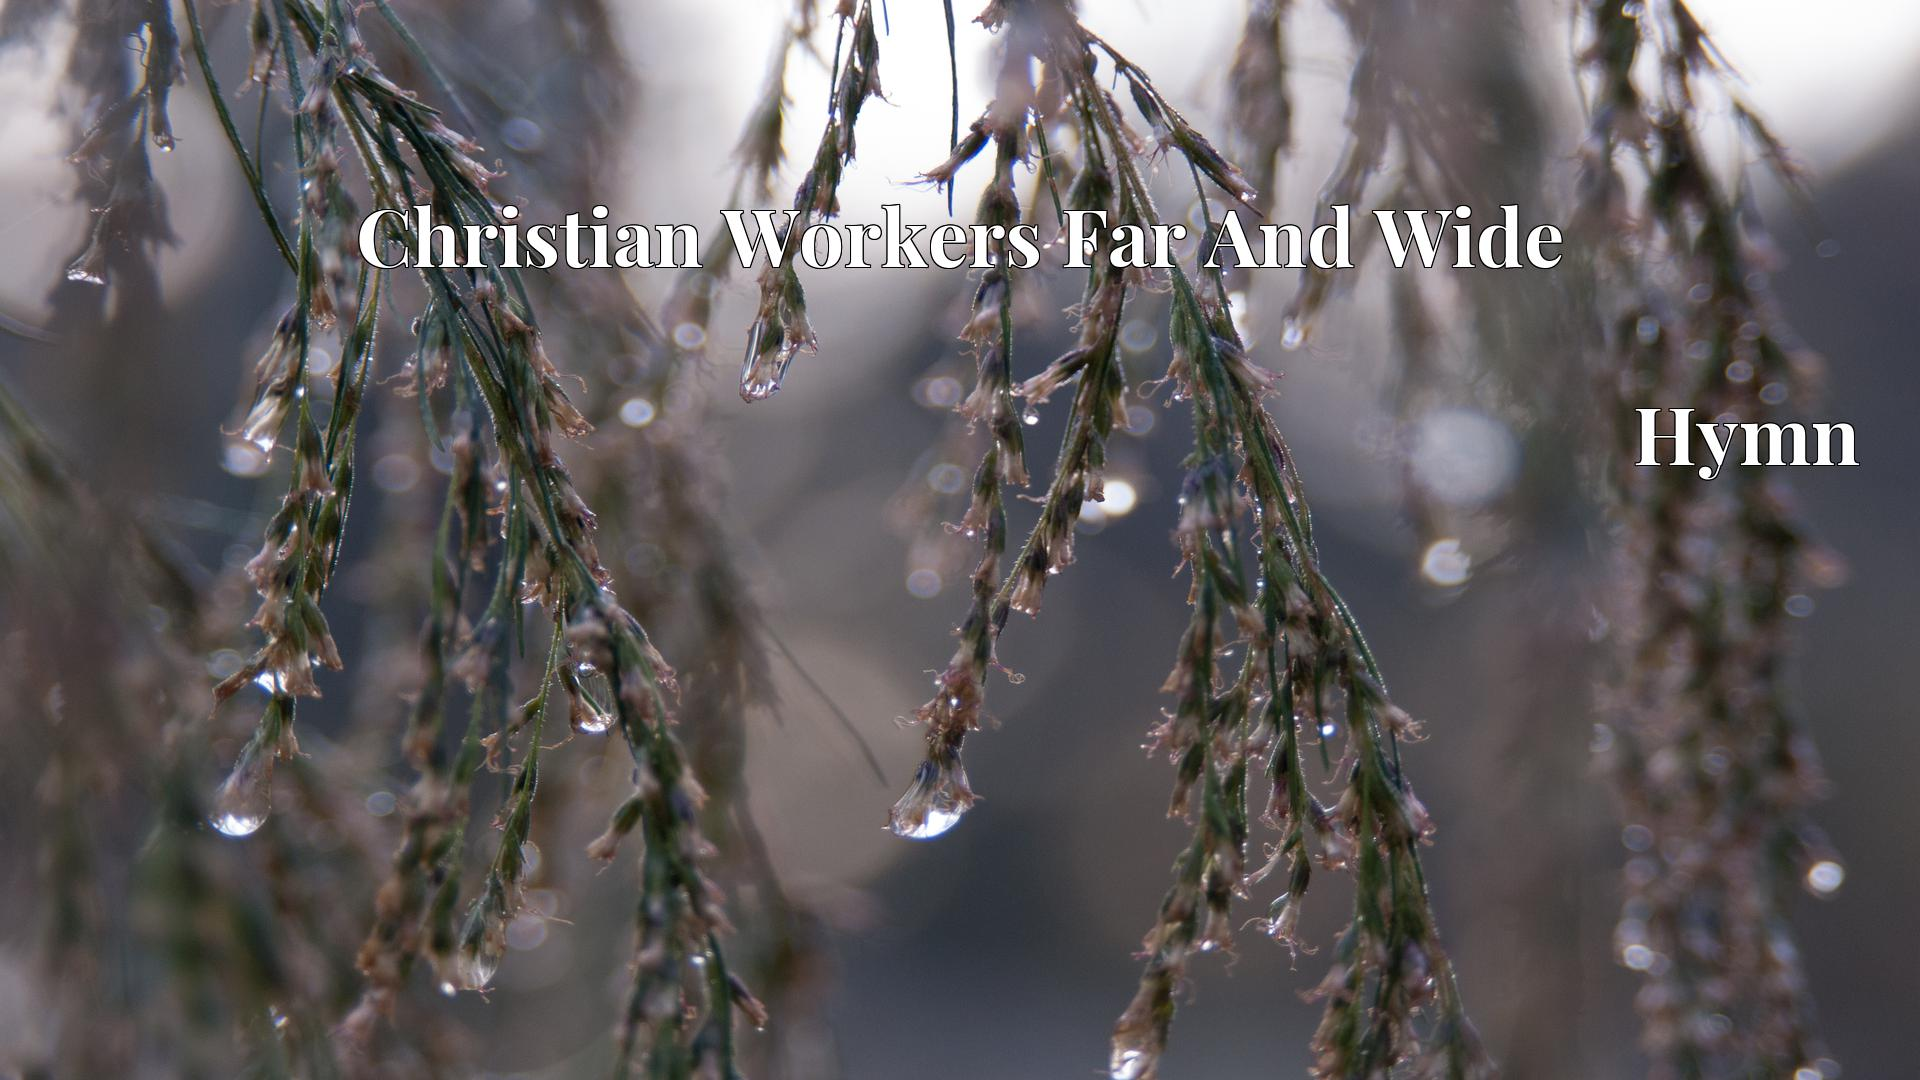 Christian Workers Far And Wide - Hymn